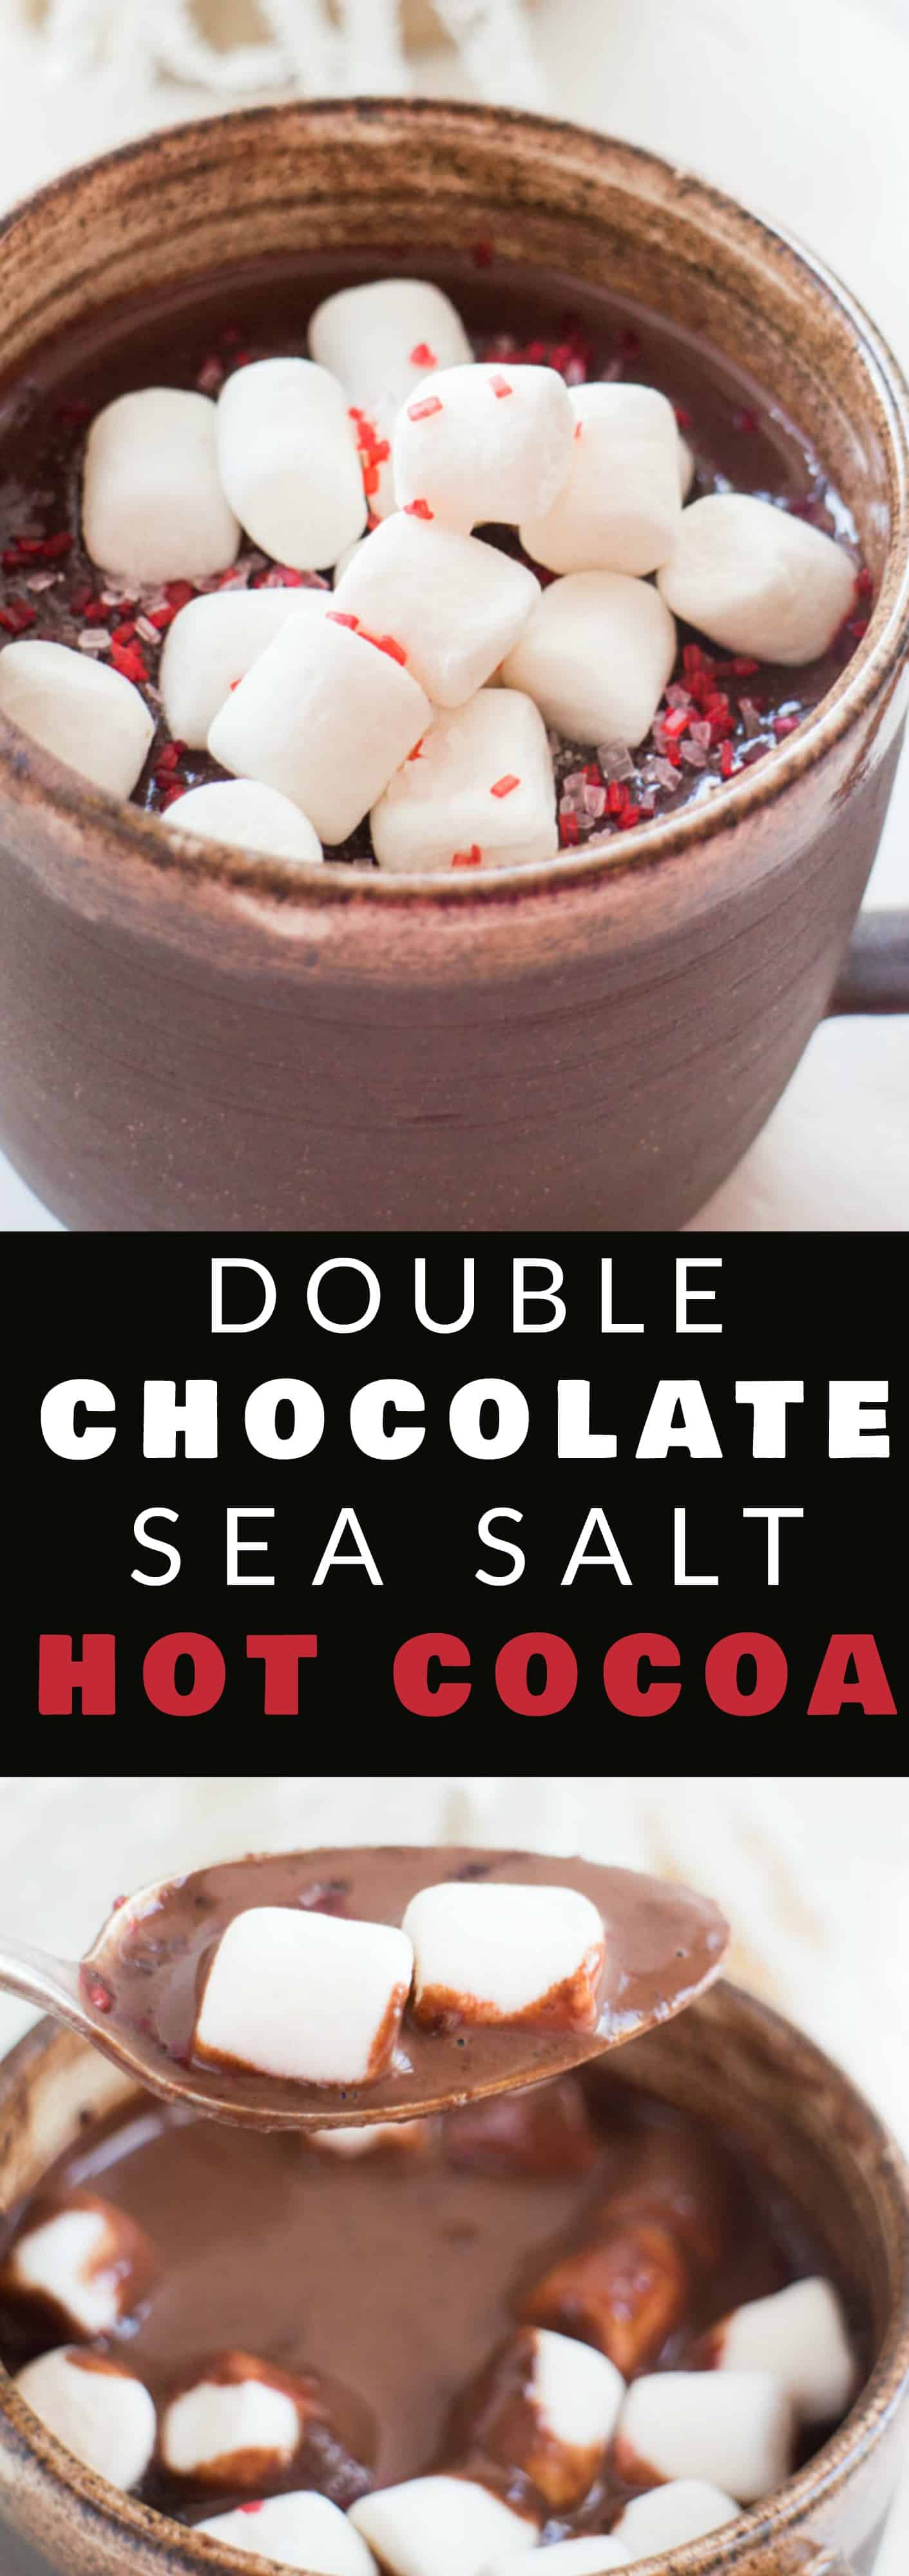 DOUBLE CHOCOLATE Sea Salt Hot Cocoa! This is our favorite homemade hot chocolate recipe, it's so rich and creamy! It's easy and quick to make!  It's  I love adding a sprinkle of sea salt on top to help balance out the double chocolate! This drink is for chocolate lovers!